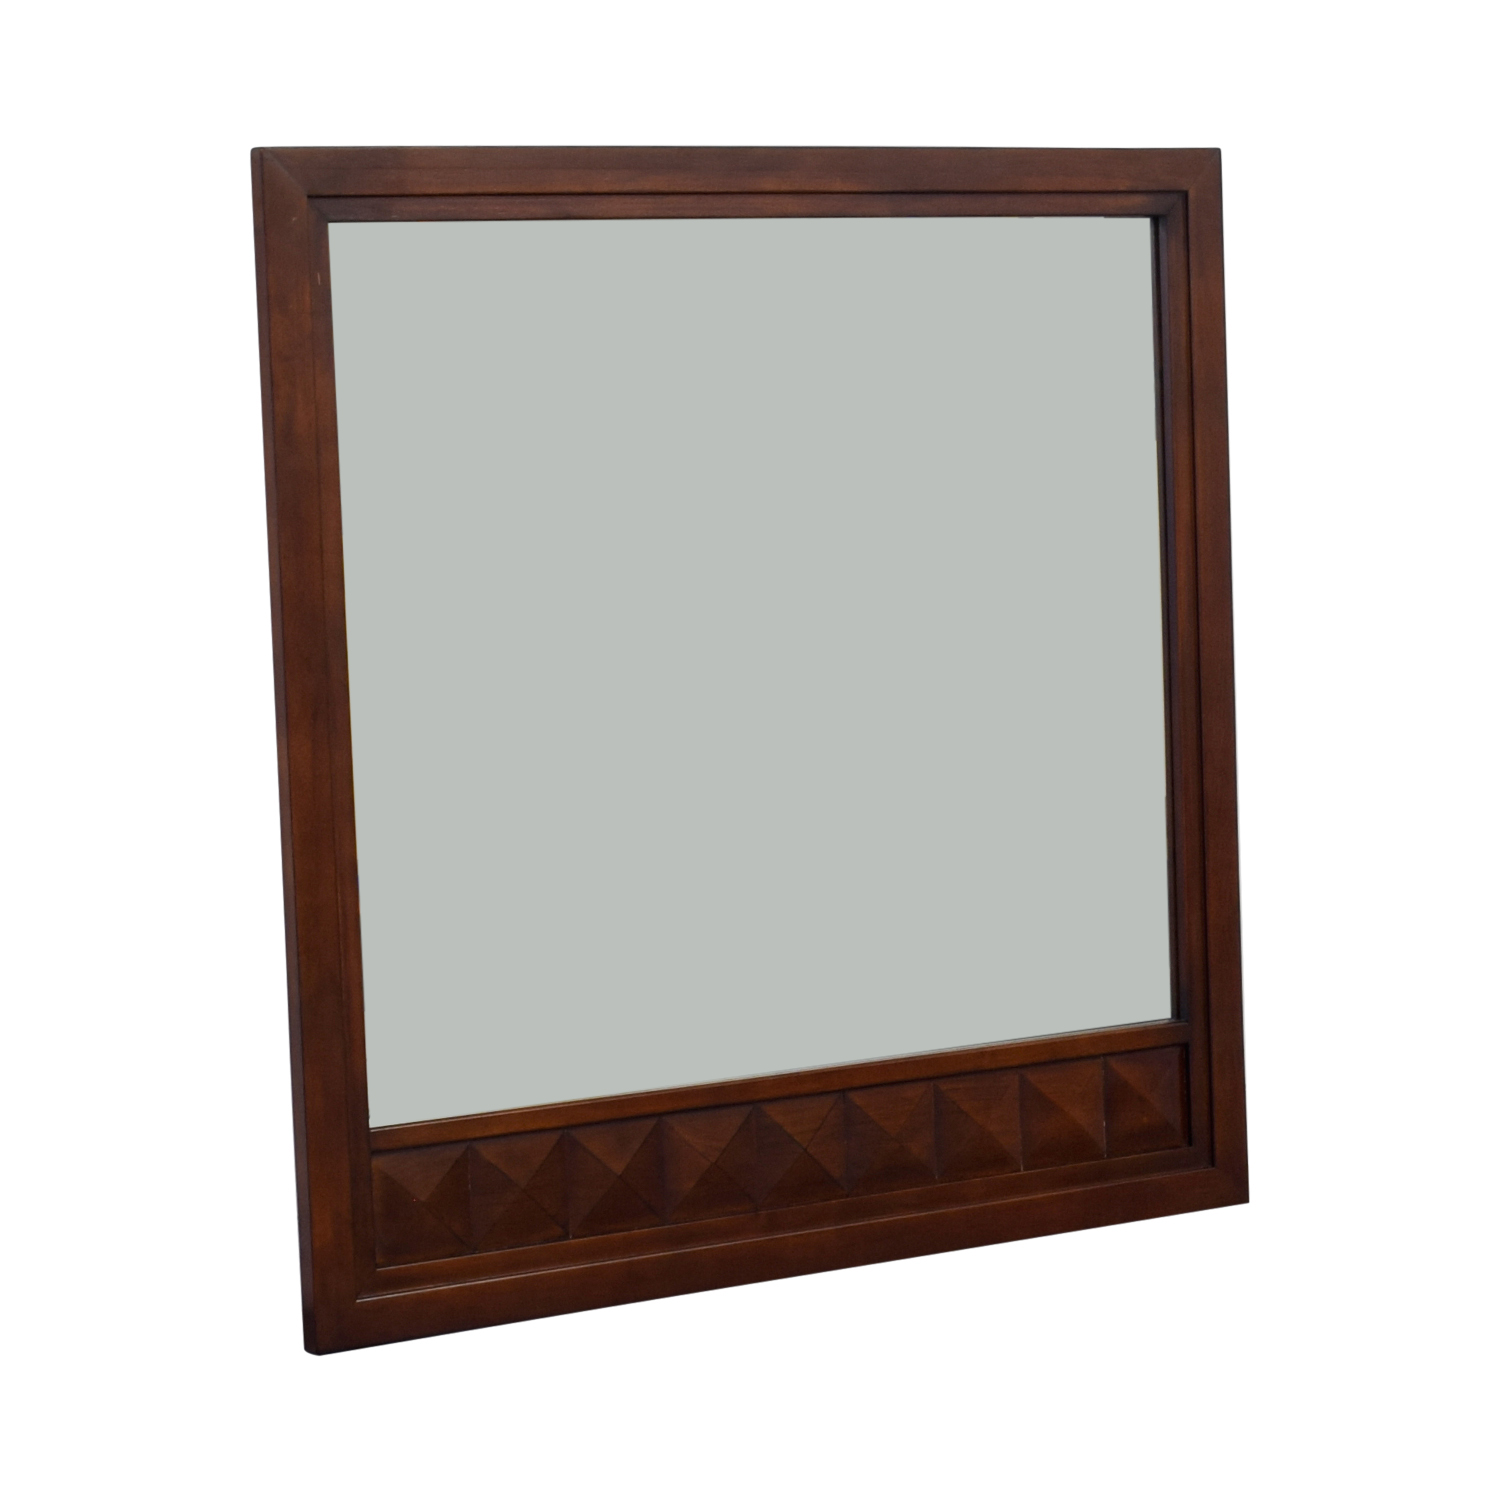 Raymour & Flanigan Shadow Dresser Mirror sale